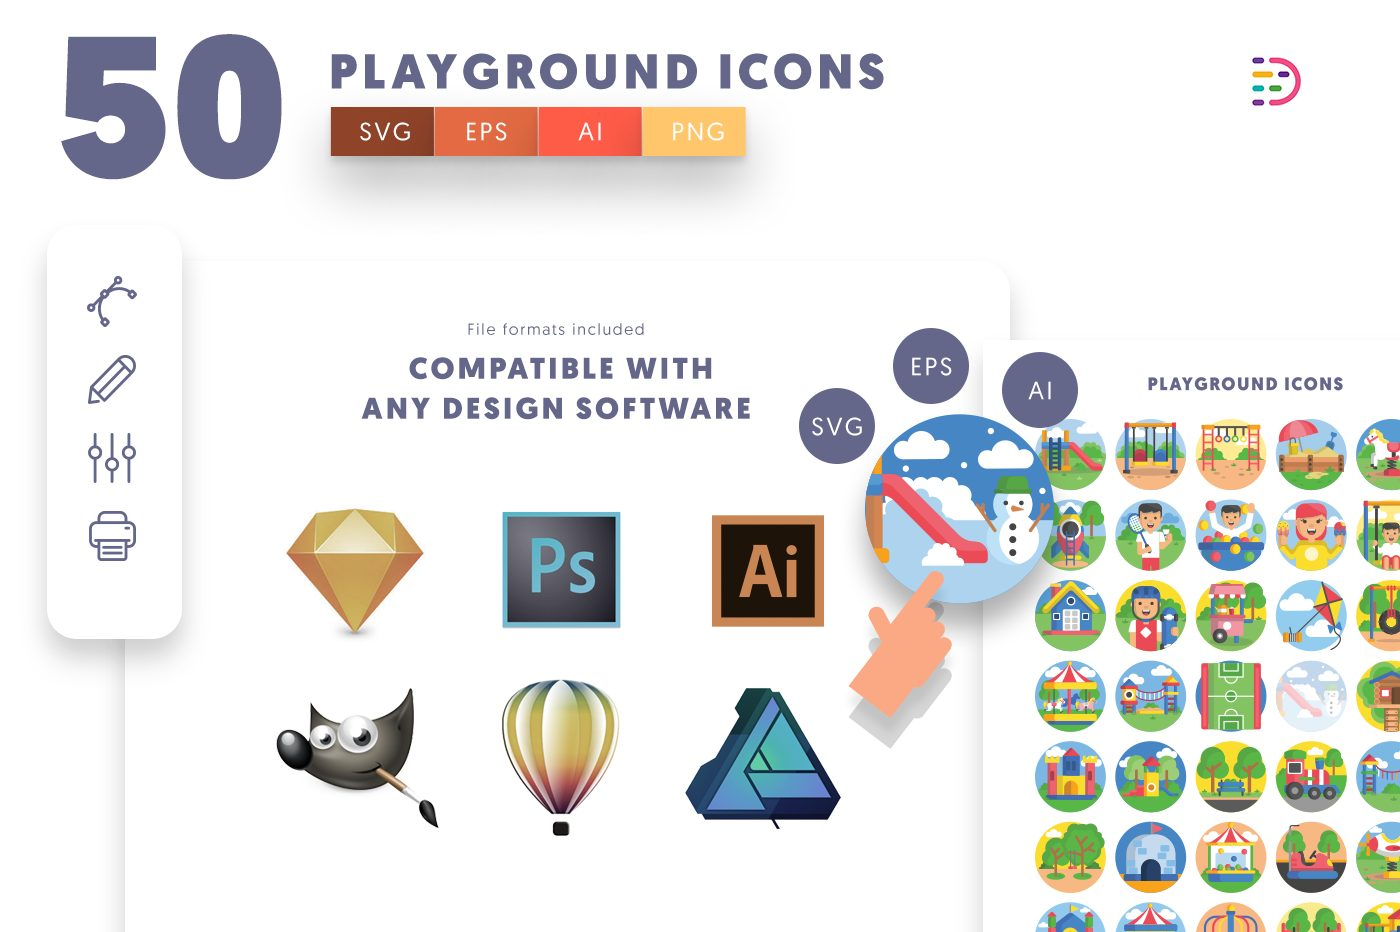 full vector 50 Playground Icons EPS, SVG, PNG